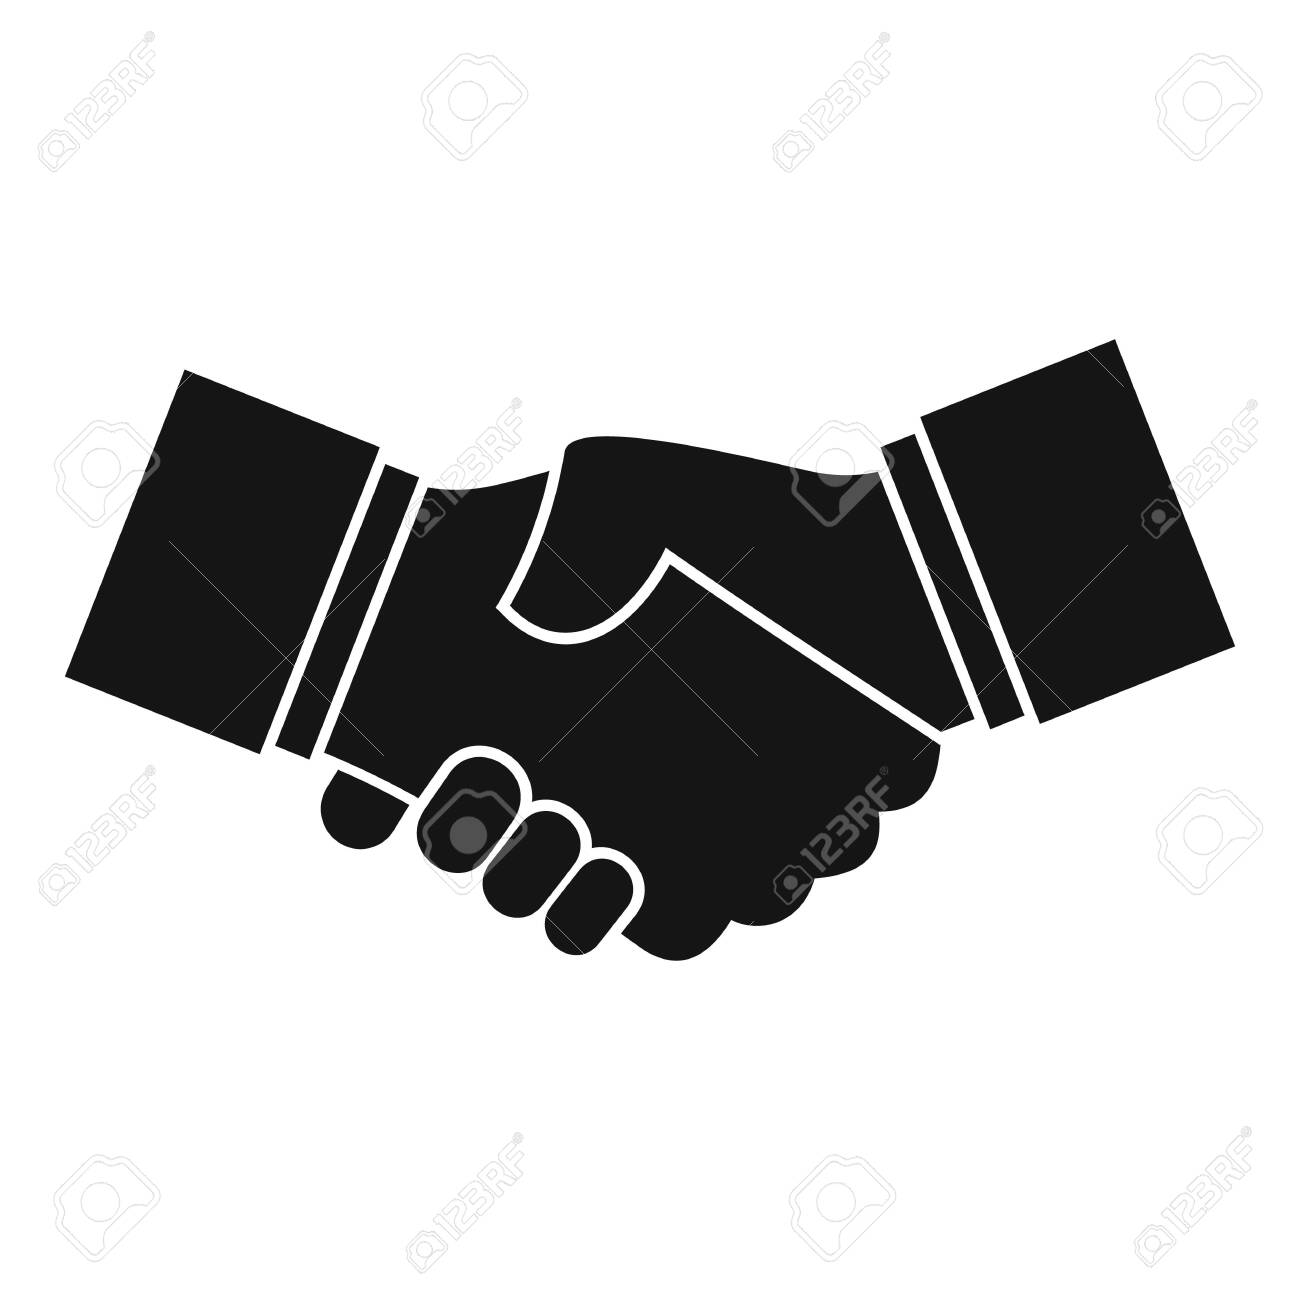 Business handshake icon, simple style - 126249889